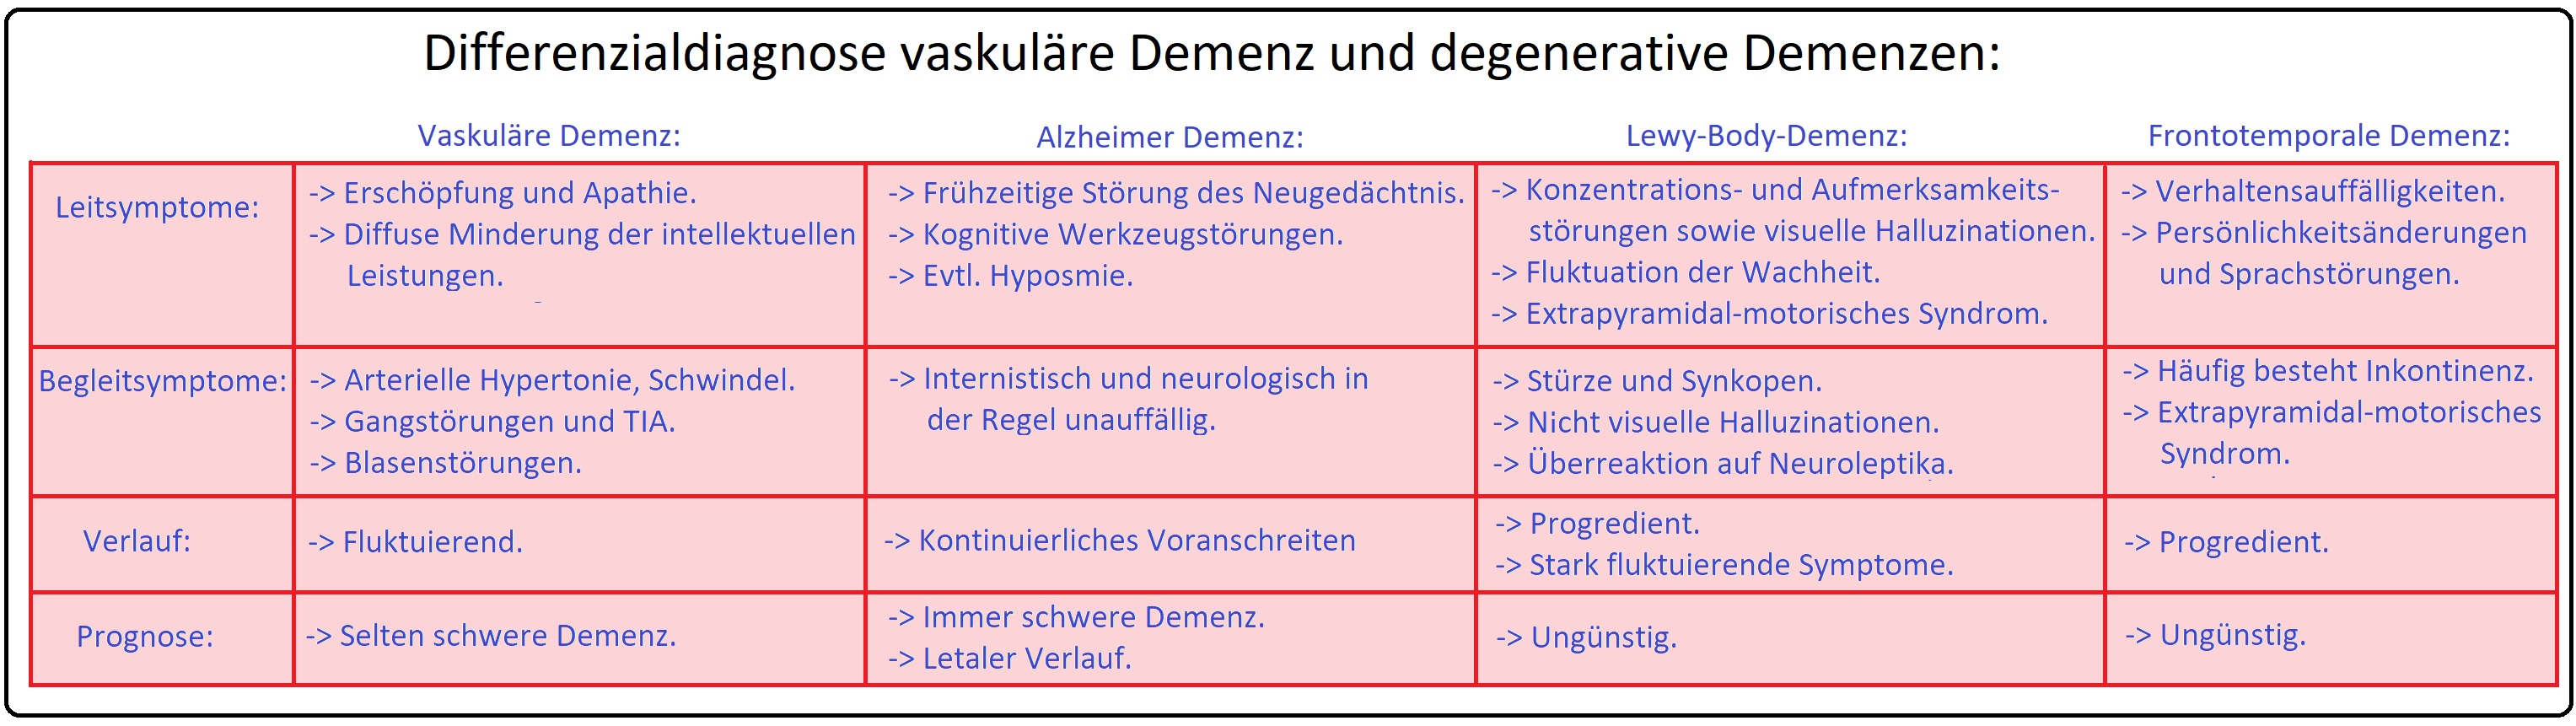 492 Differenzialdiagnose vaskuläre Demenz und degenerative Demenzen